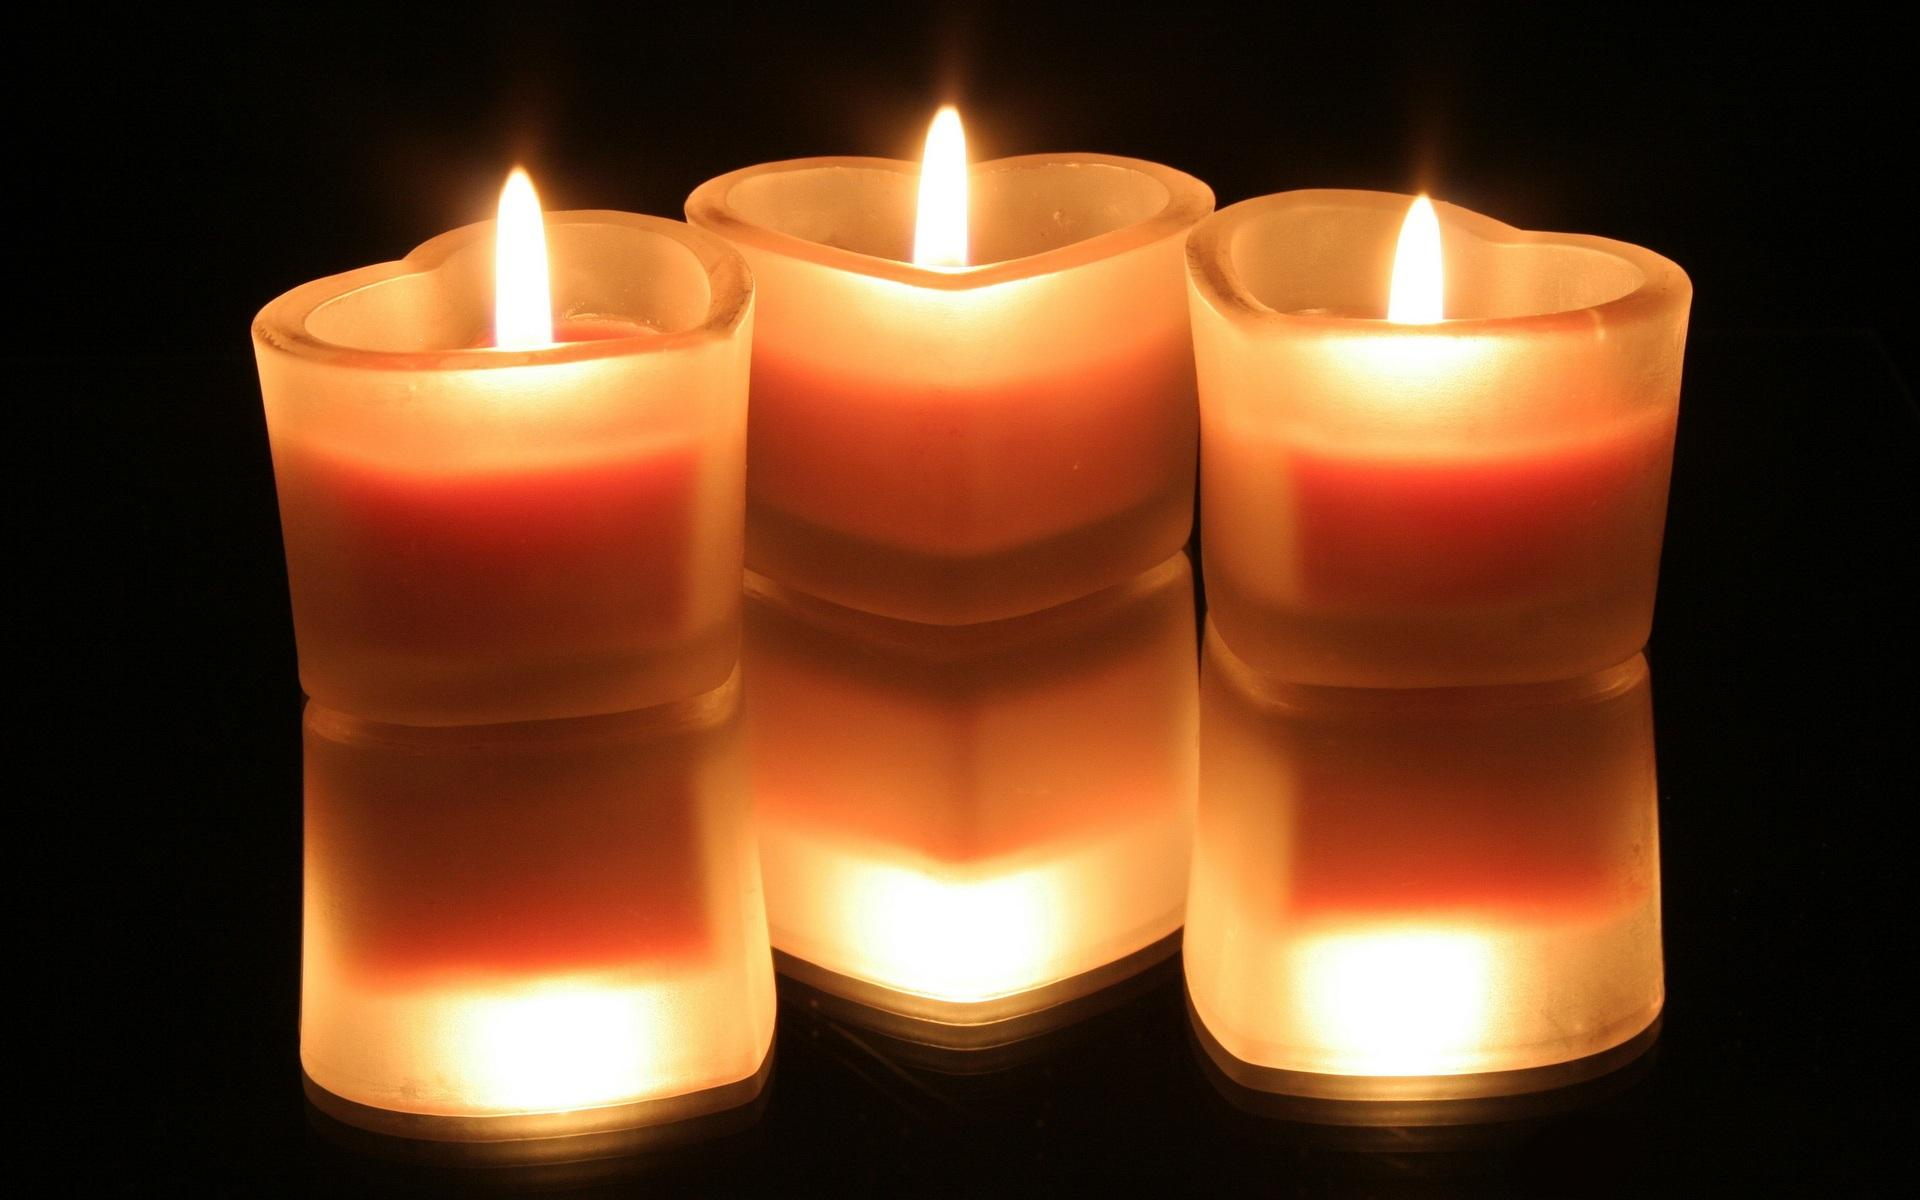 Wholesale candles at the best price and with shipping to the whole country